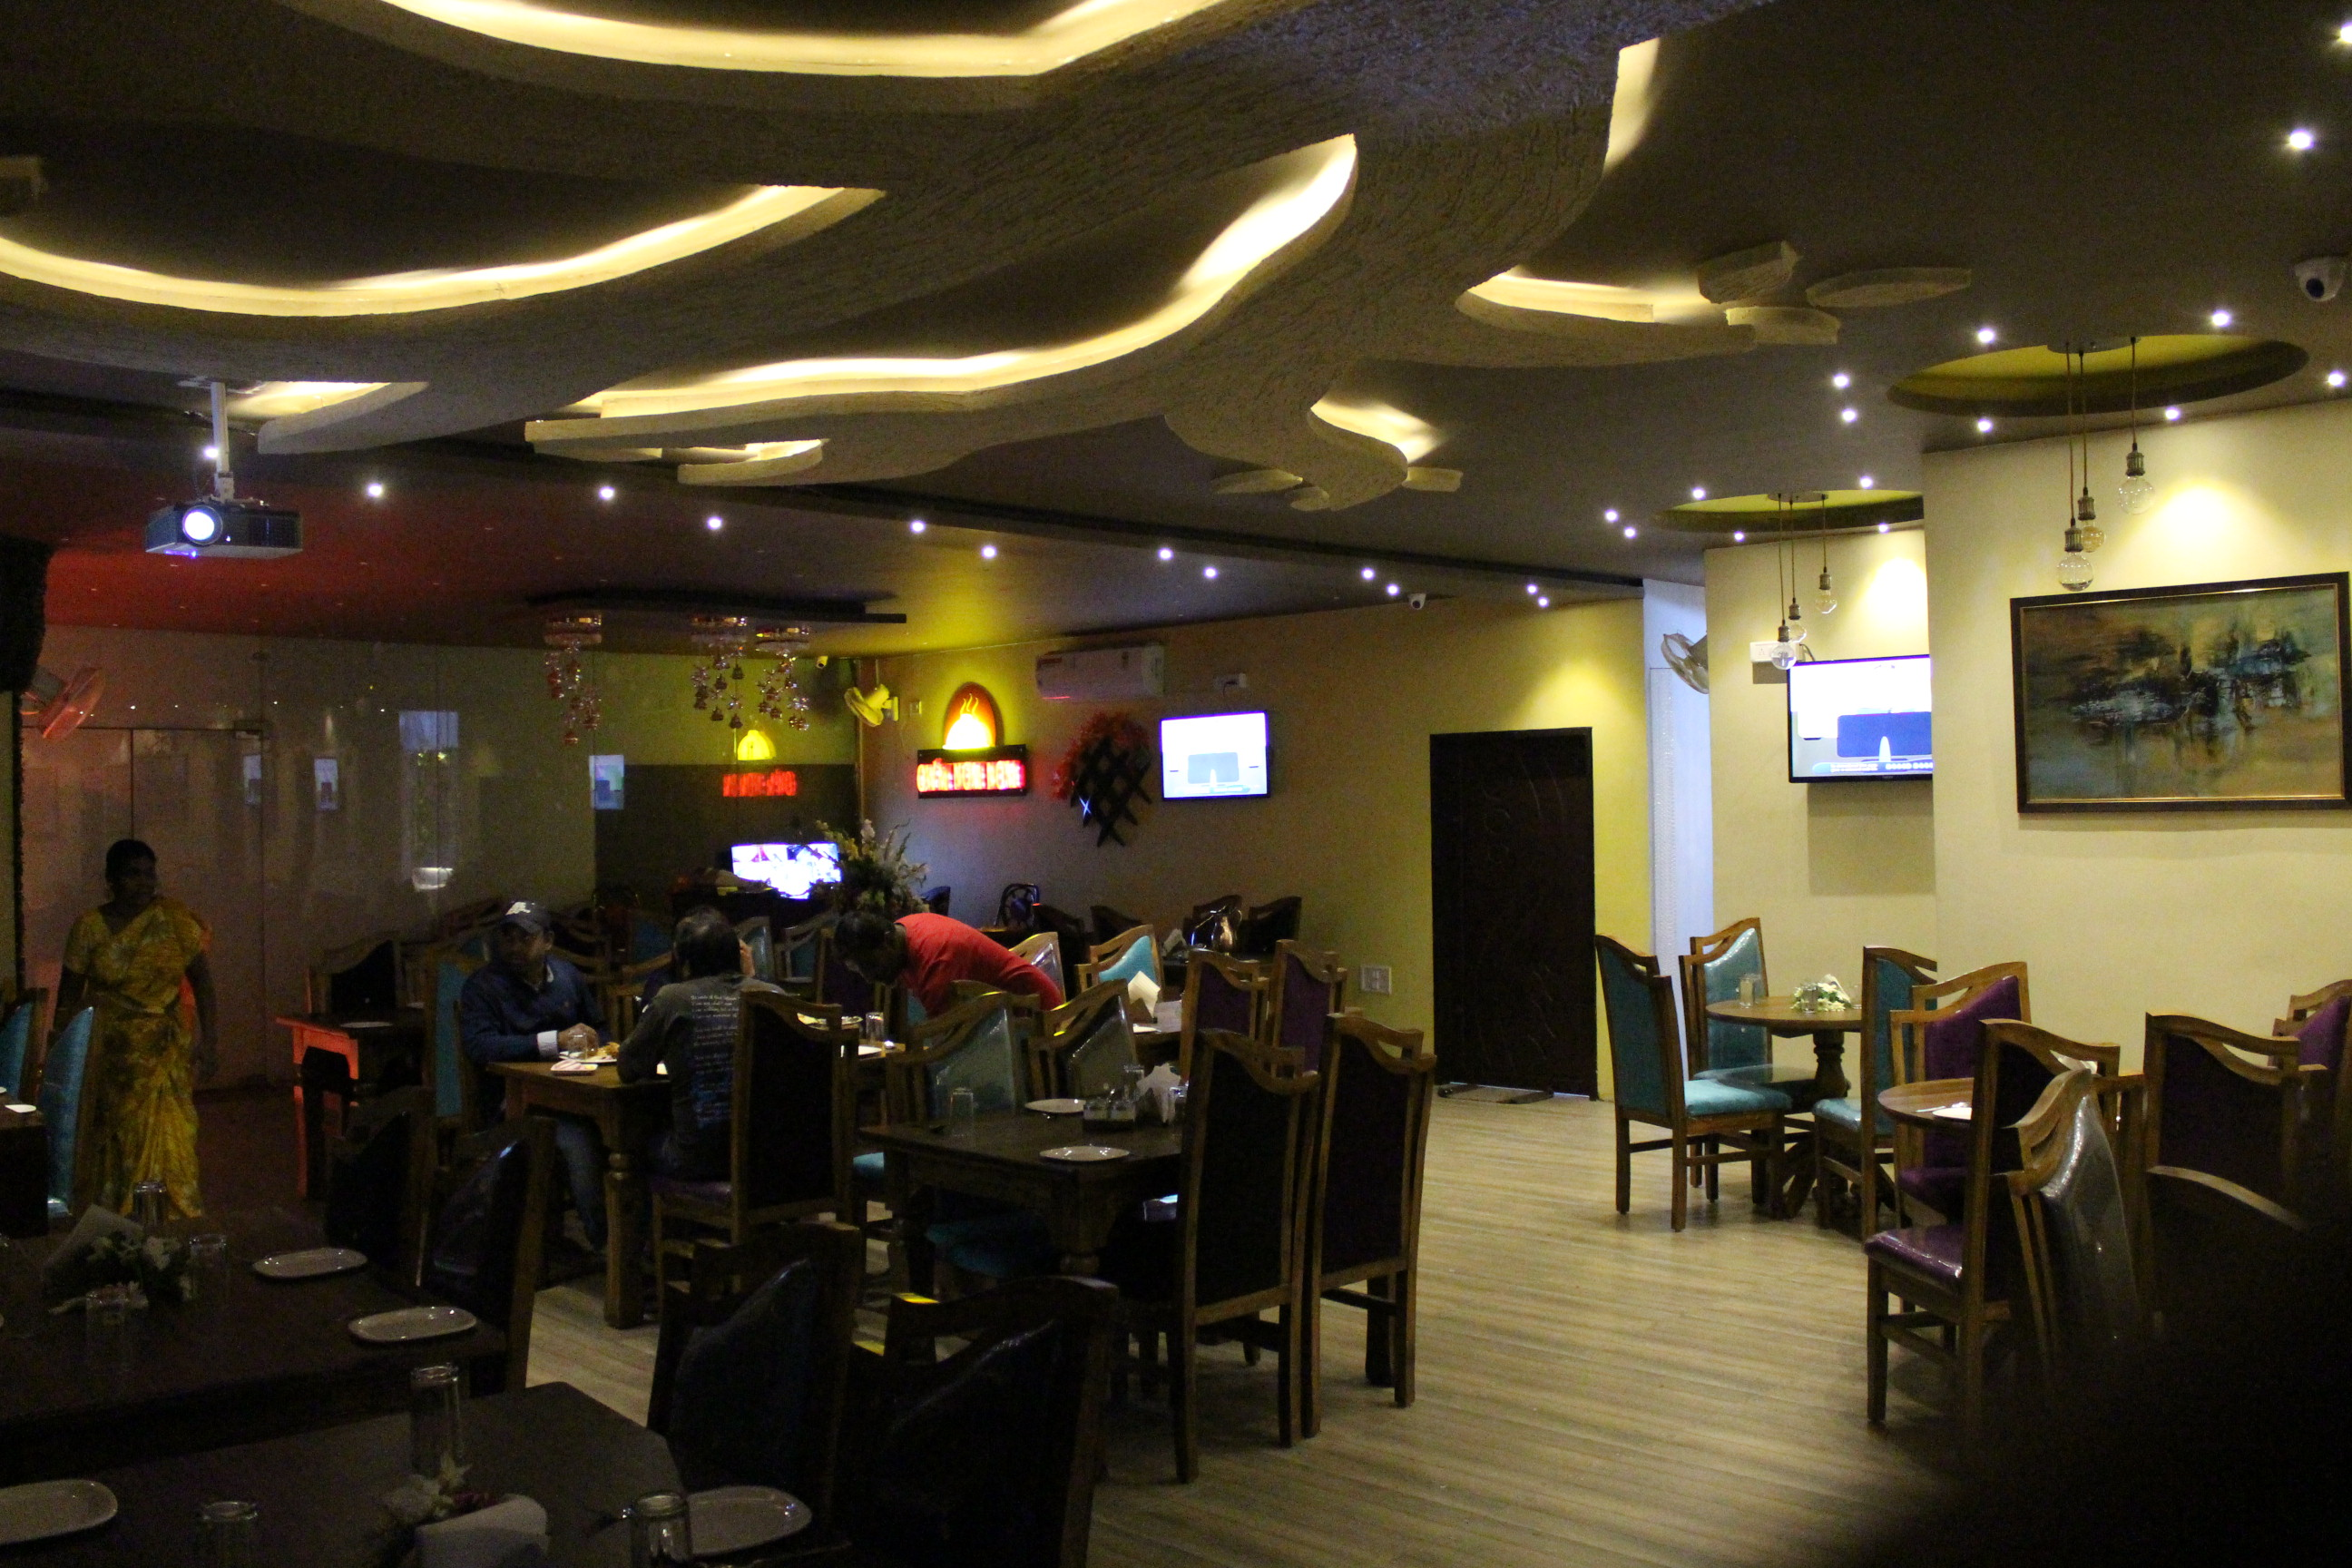 A Running Profitable Multi-Cuisine Restaurant for Sale in Hyderabad